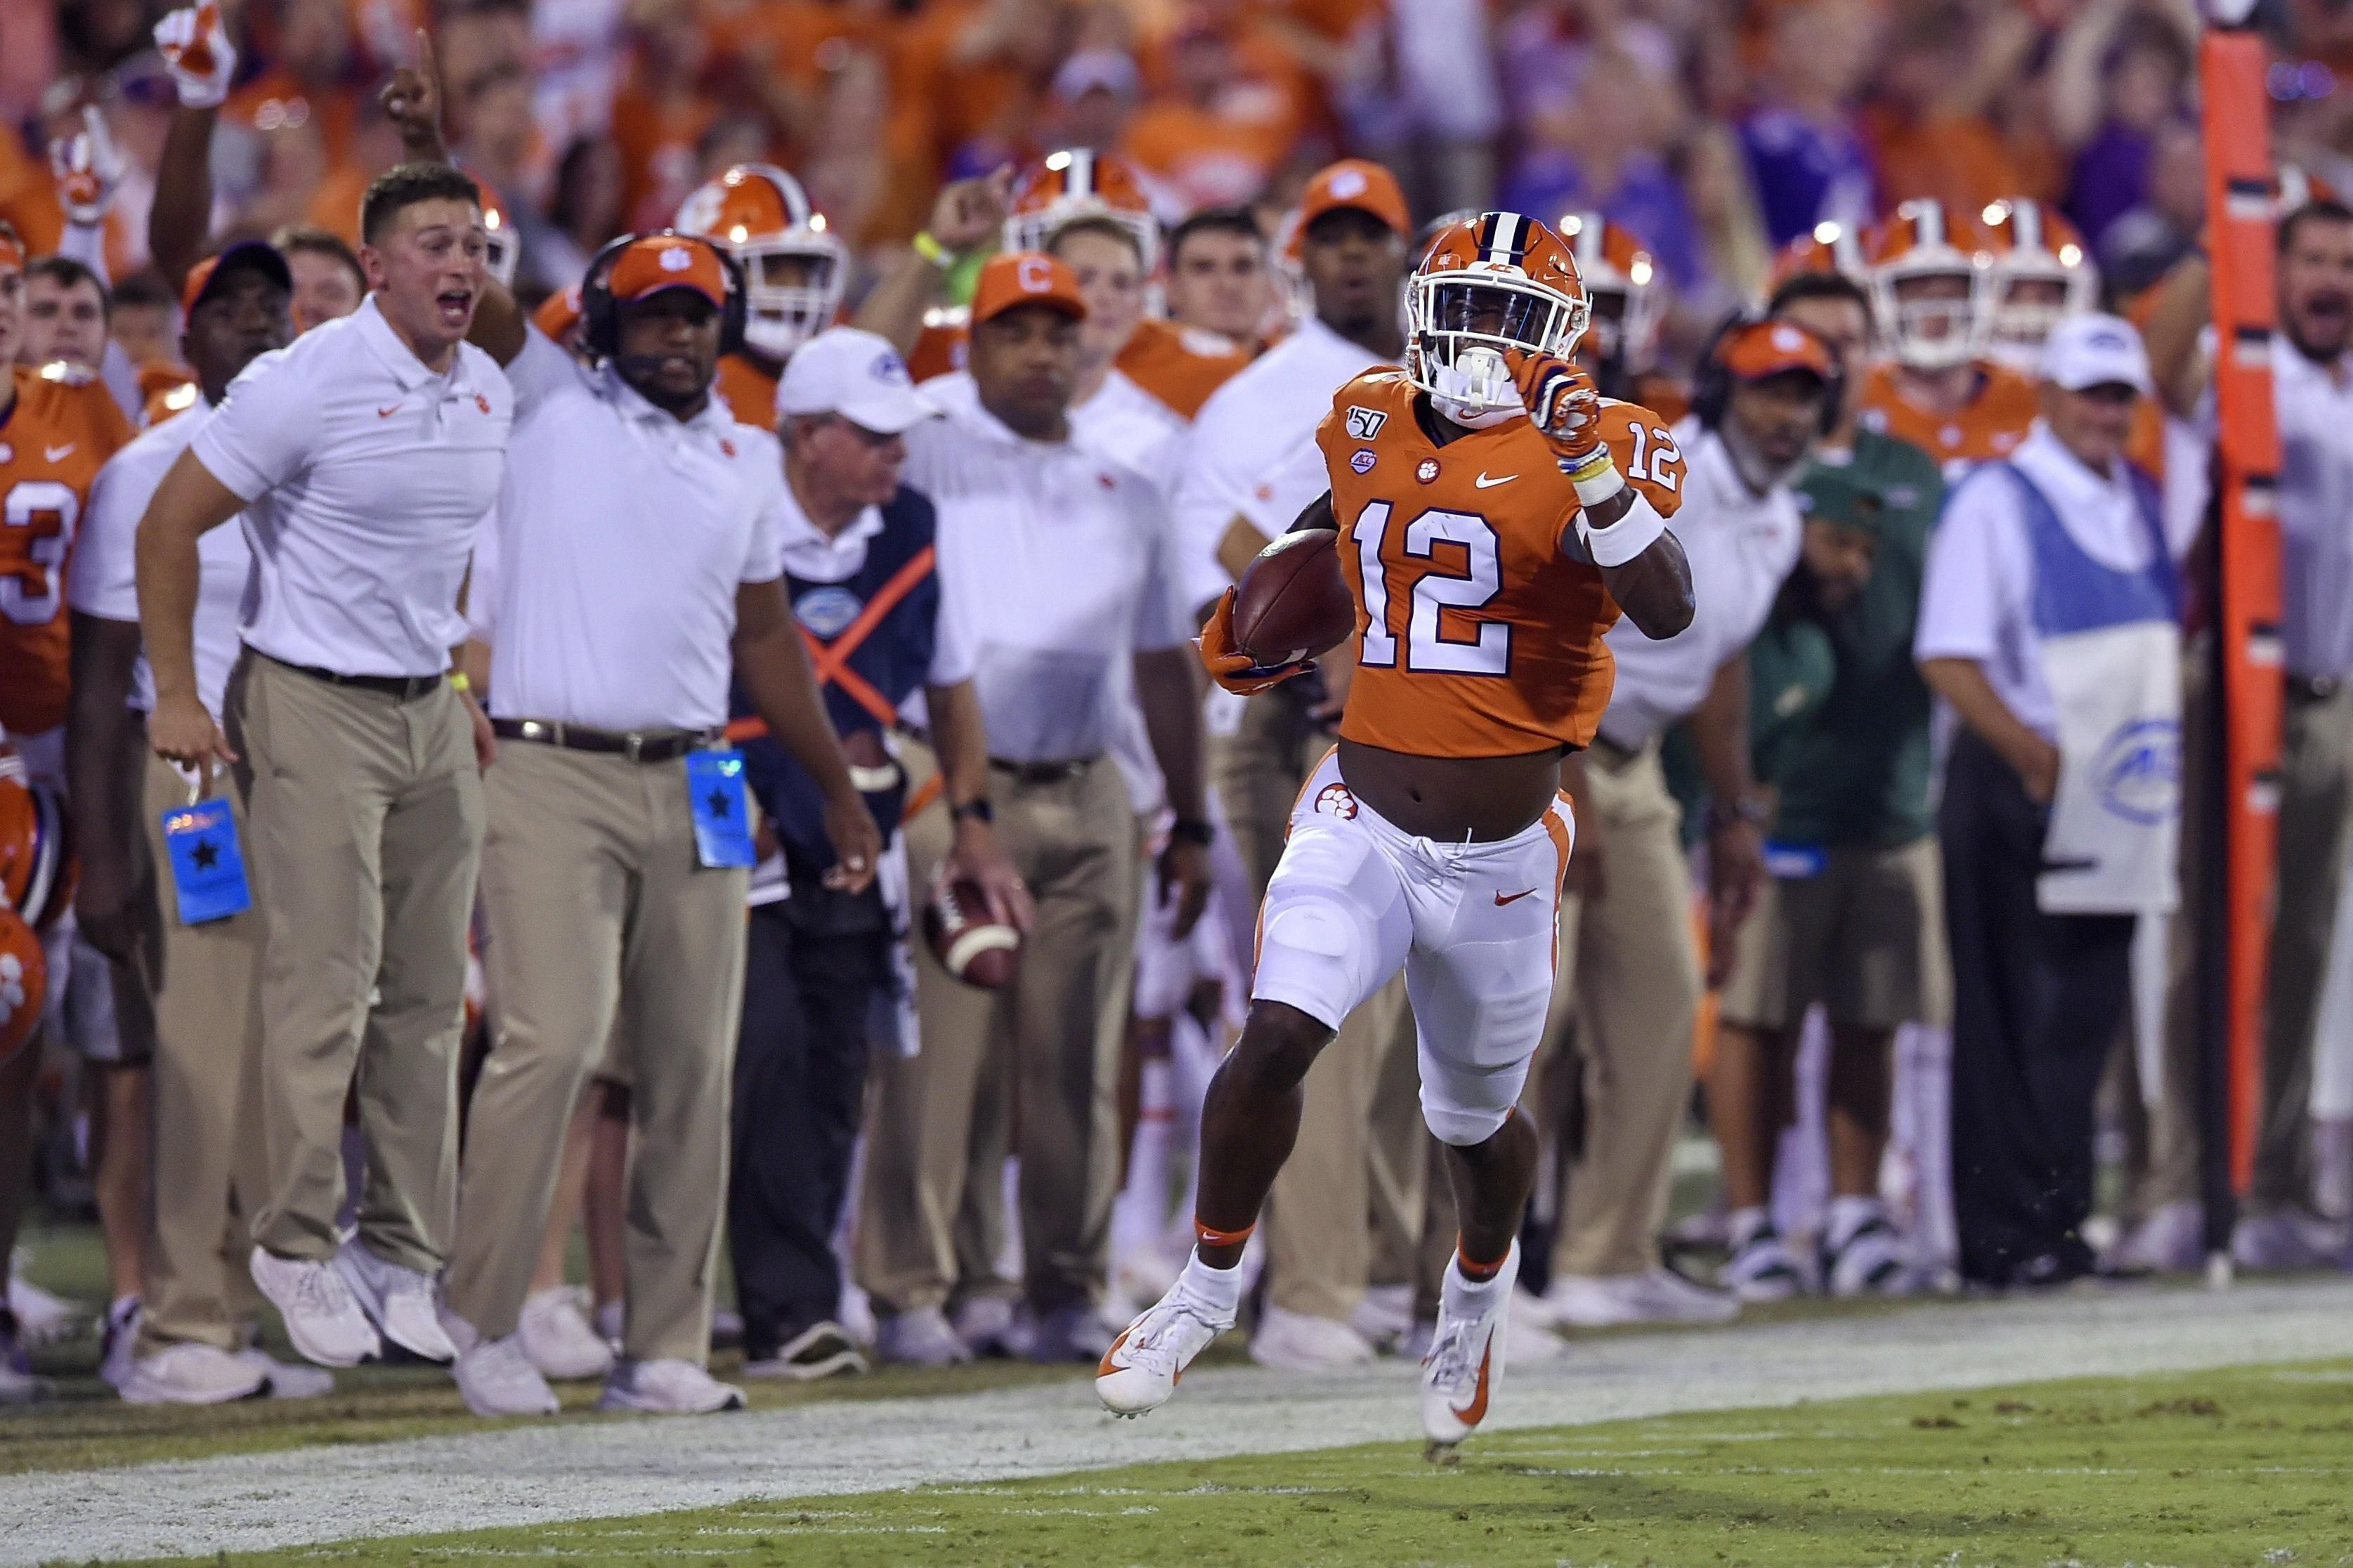 College Football Ap Top 25 College Football Rankings For Week 5 Ift Tt 2mxdteo Photos College Football Ap Top 25 College Football Rankings For Week 5 In 2020